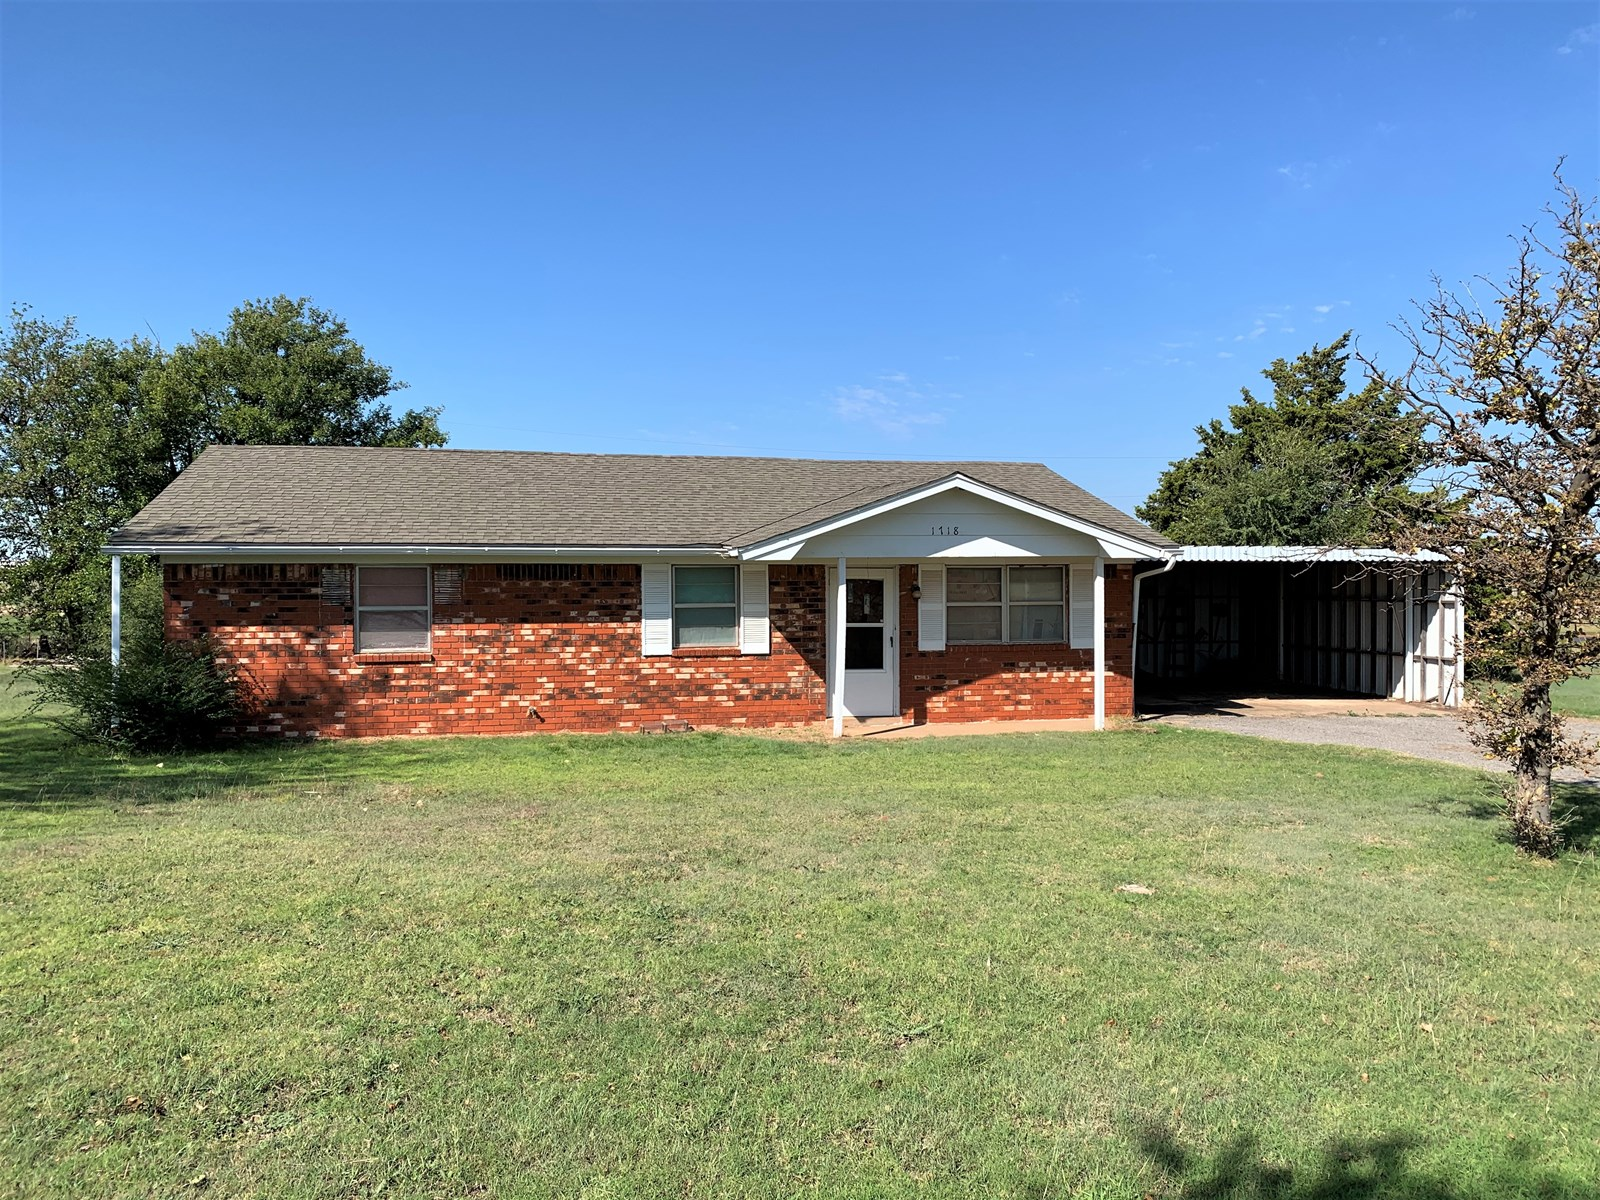 Country Home with Acreage for Sale – Clinton, OK 73601